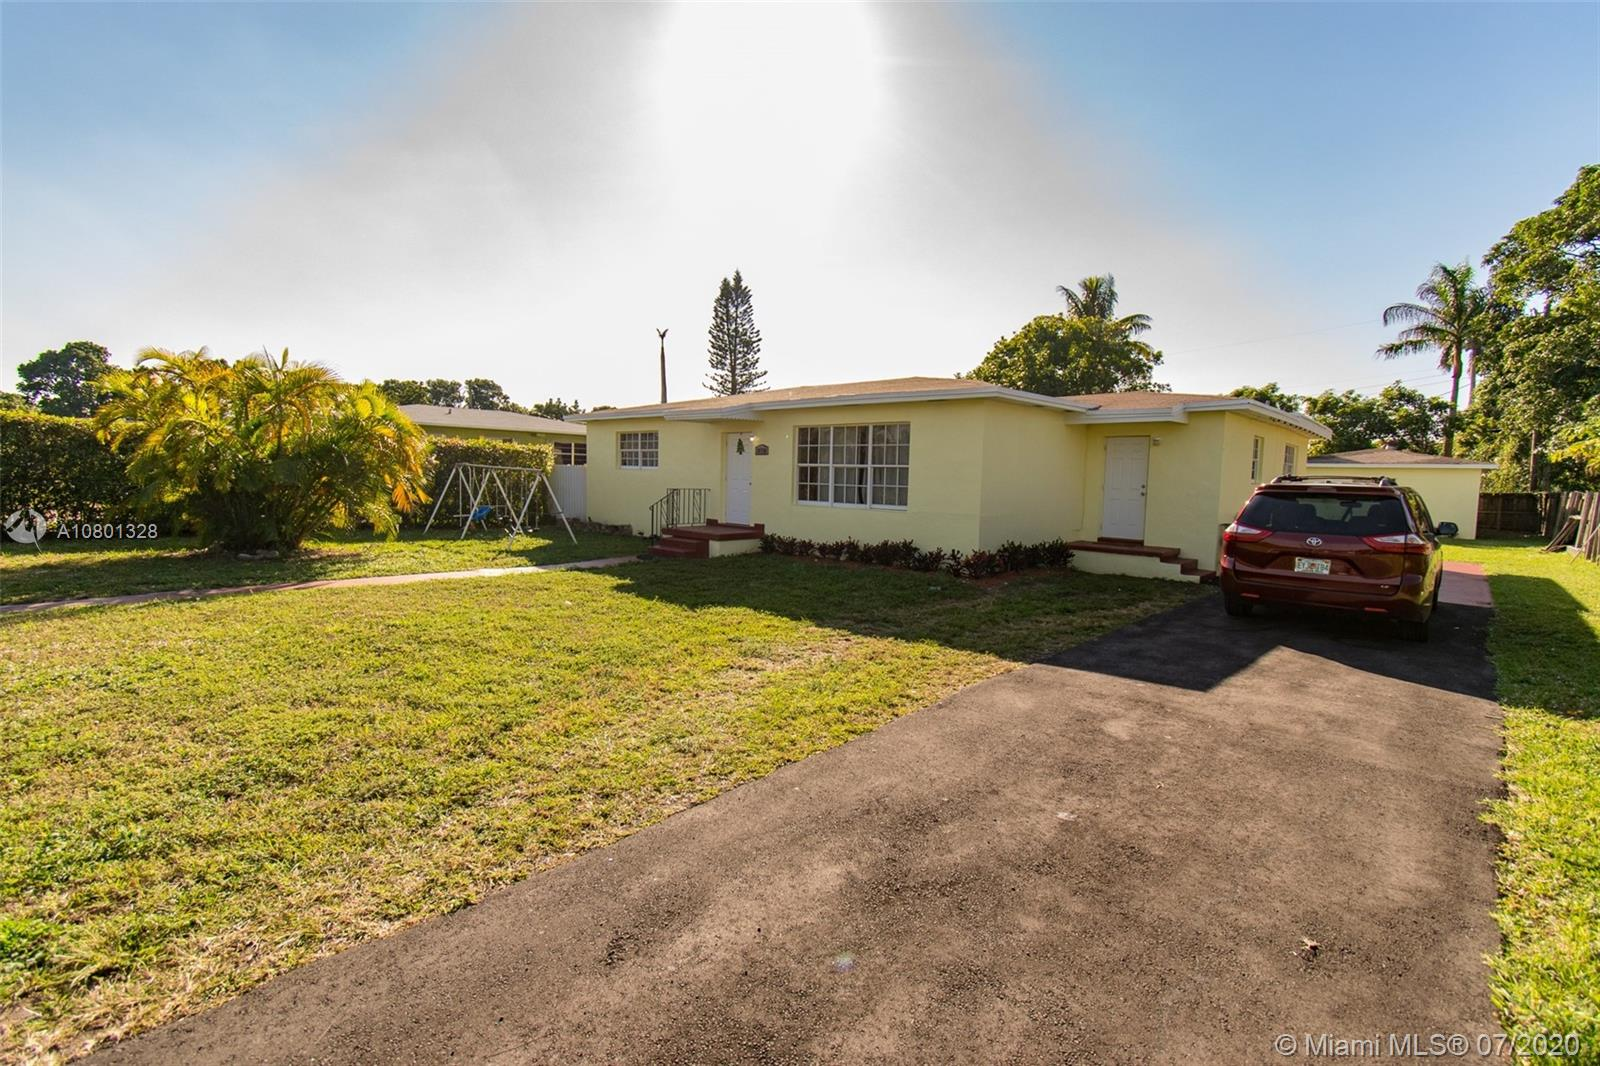 10730 NW 22nd Ave Rd, Miami, FL 33167